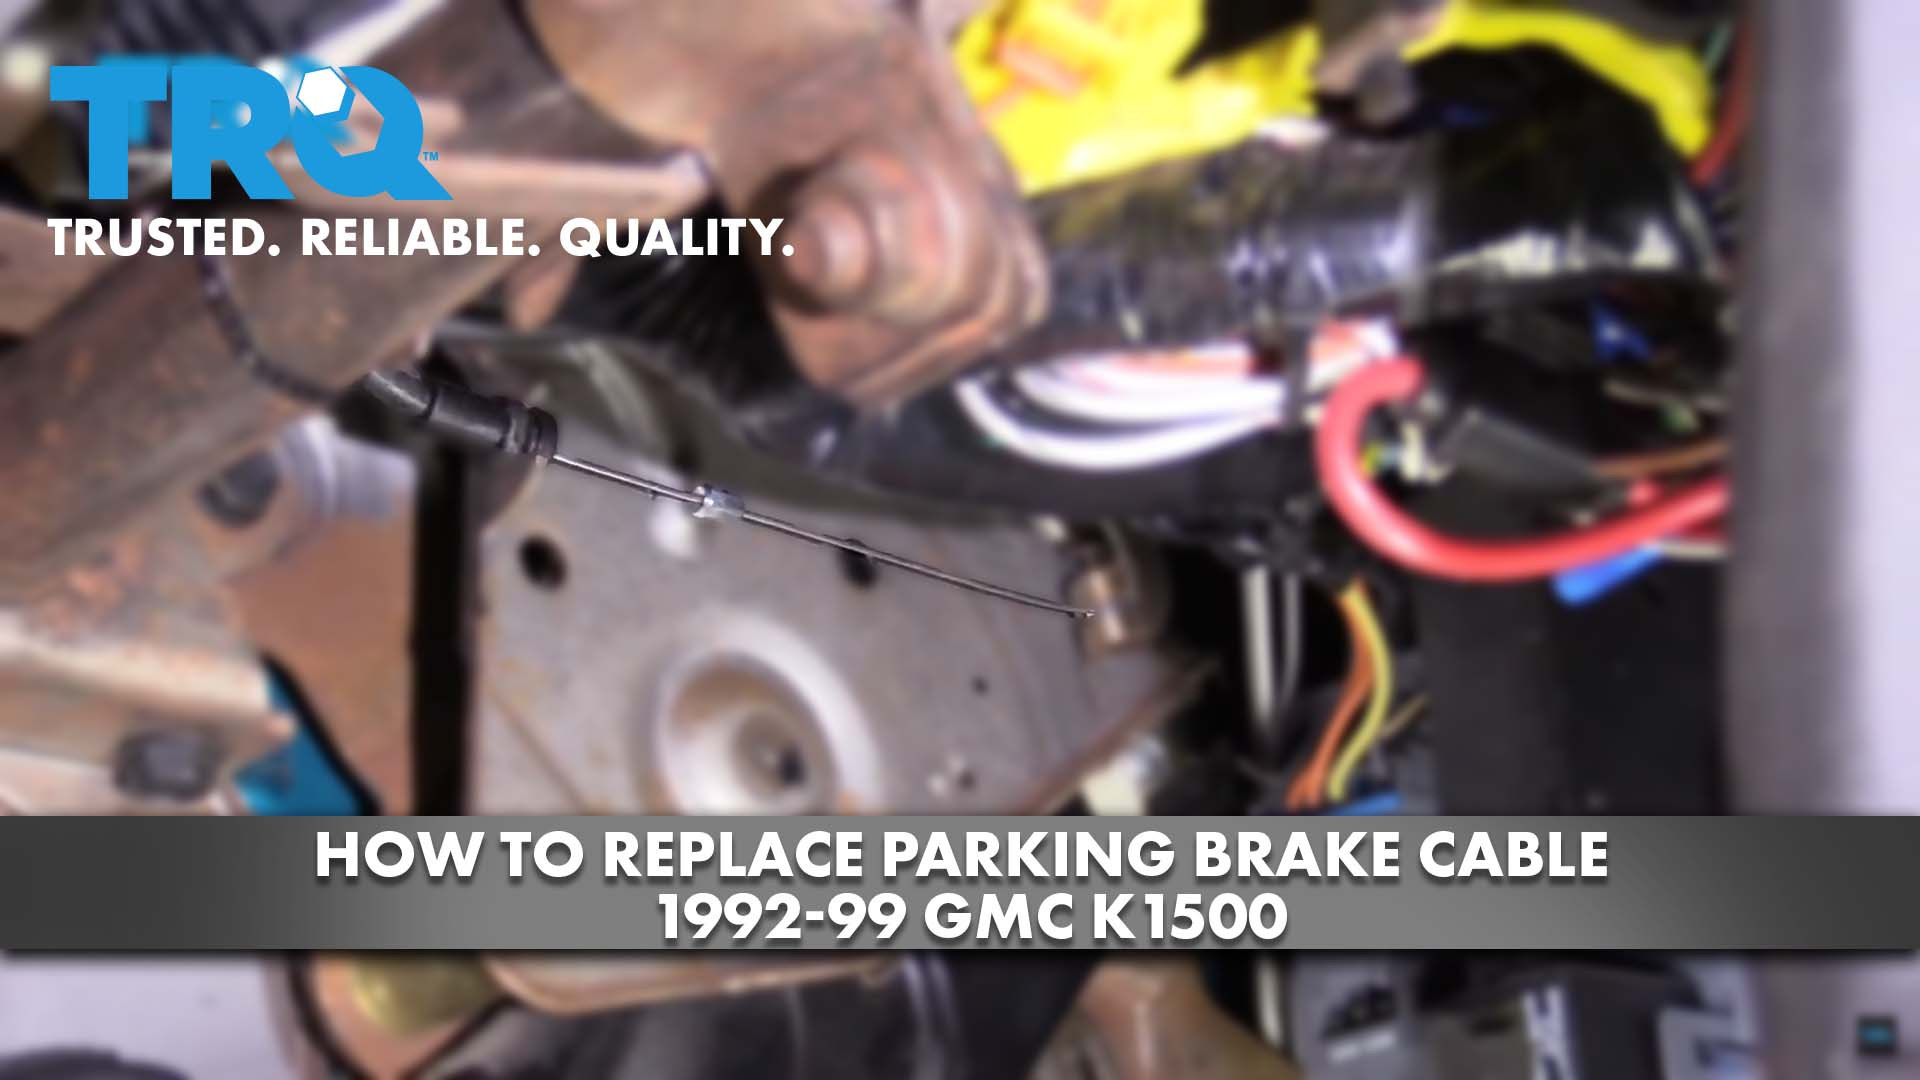 How to Replace Parking Brake Cable 92-99 GMC K1500